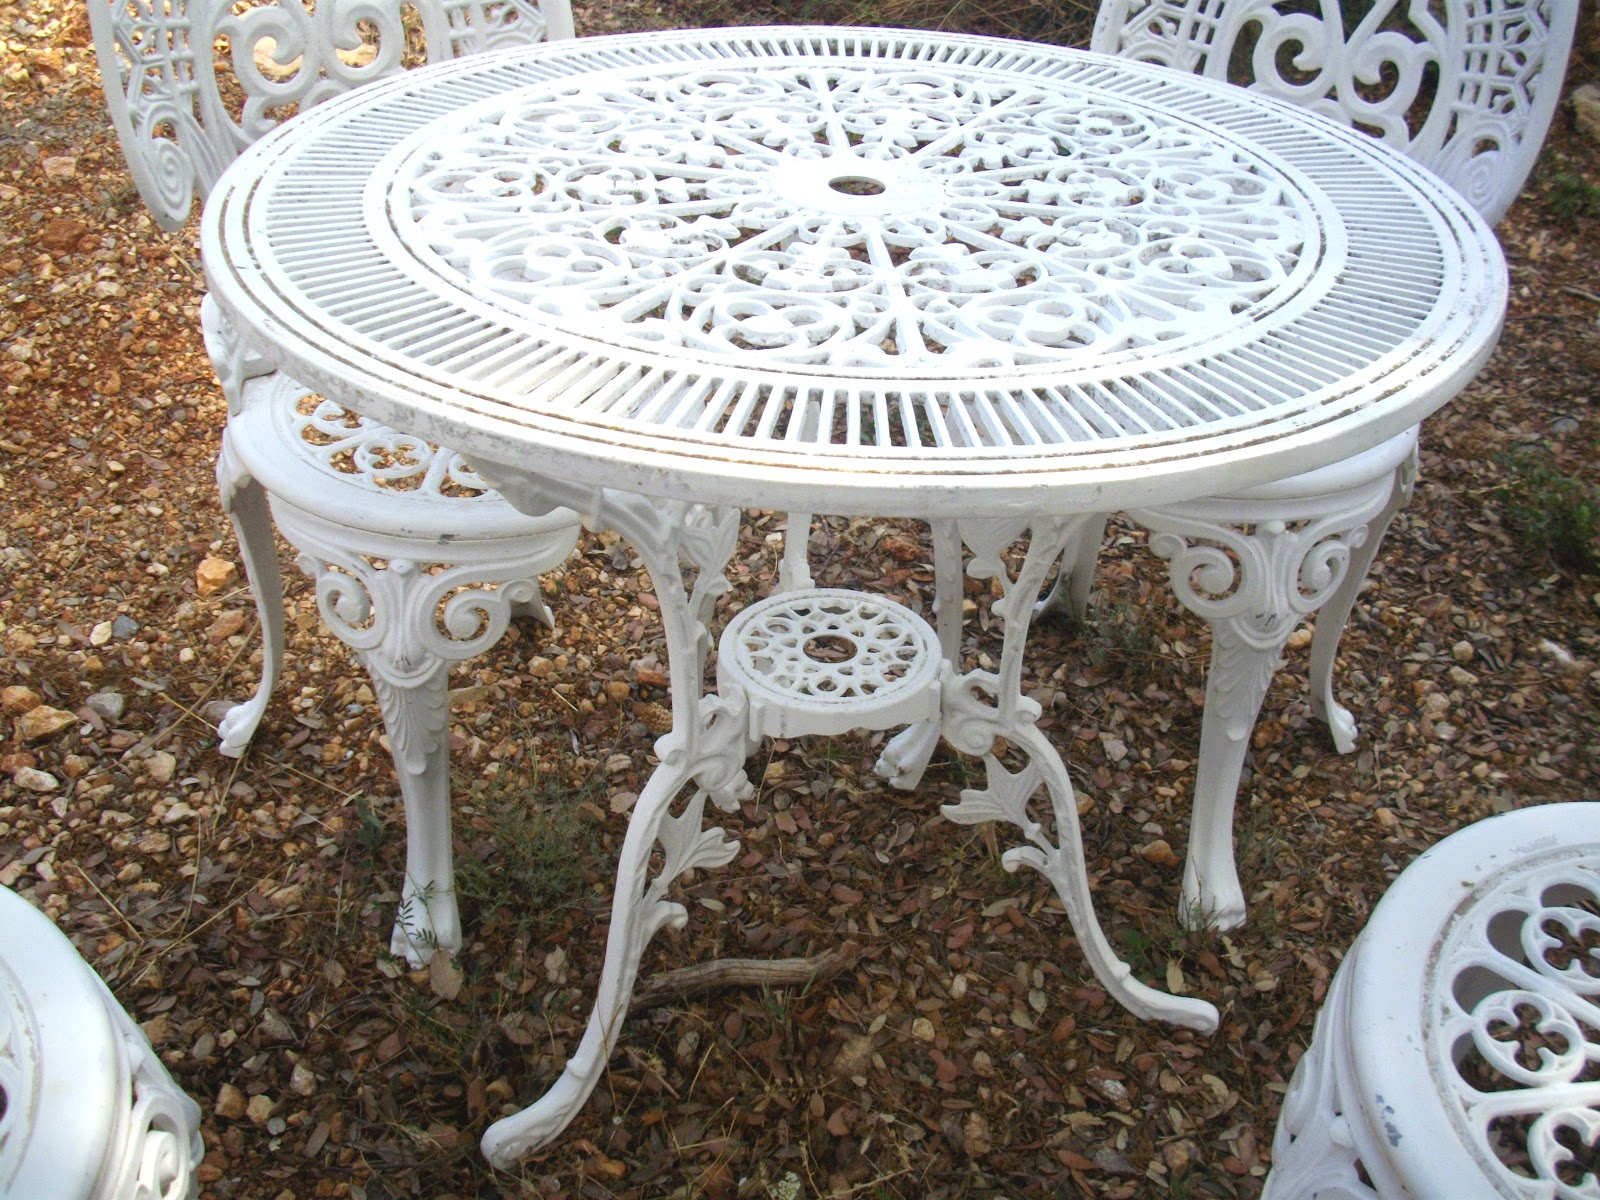 Salon de jardin rocaille blanc immitation fonte no fer forg showroom didoulabrocante for Couleur salon de jardin en fer